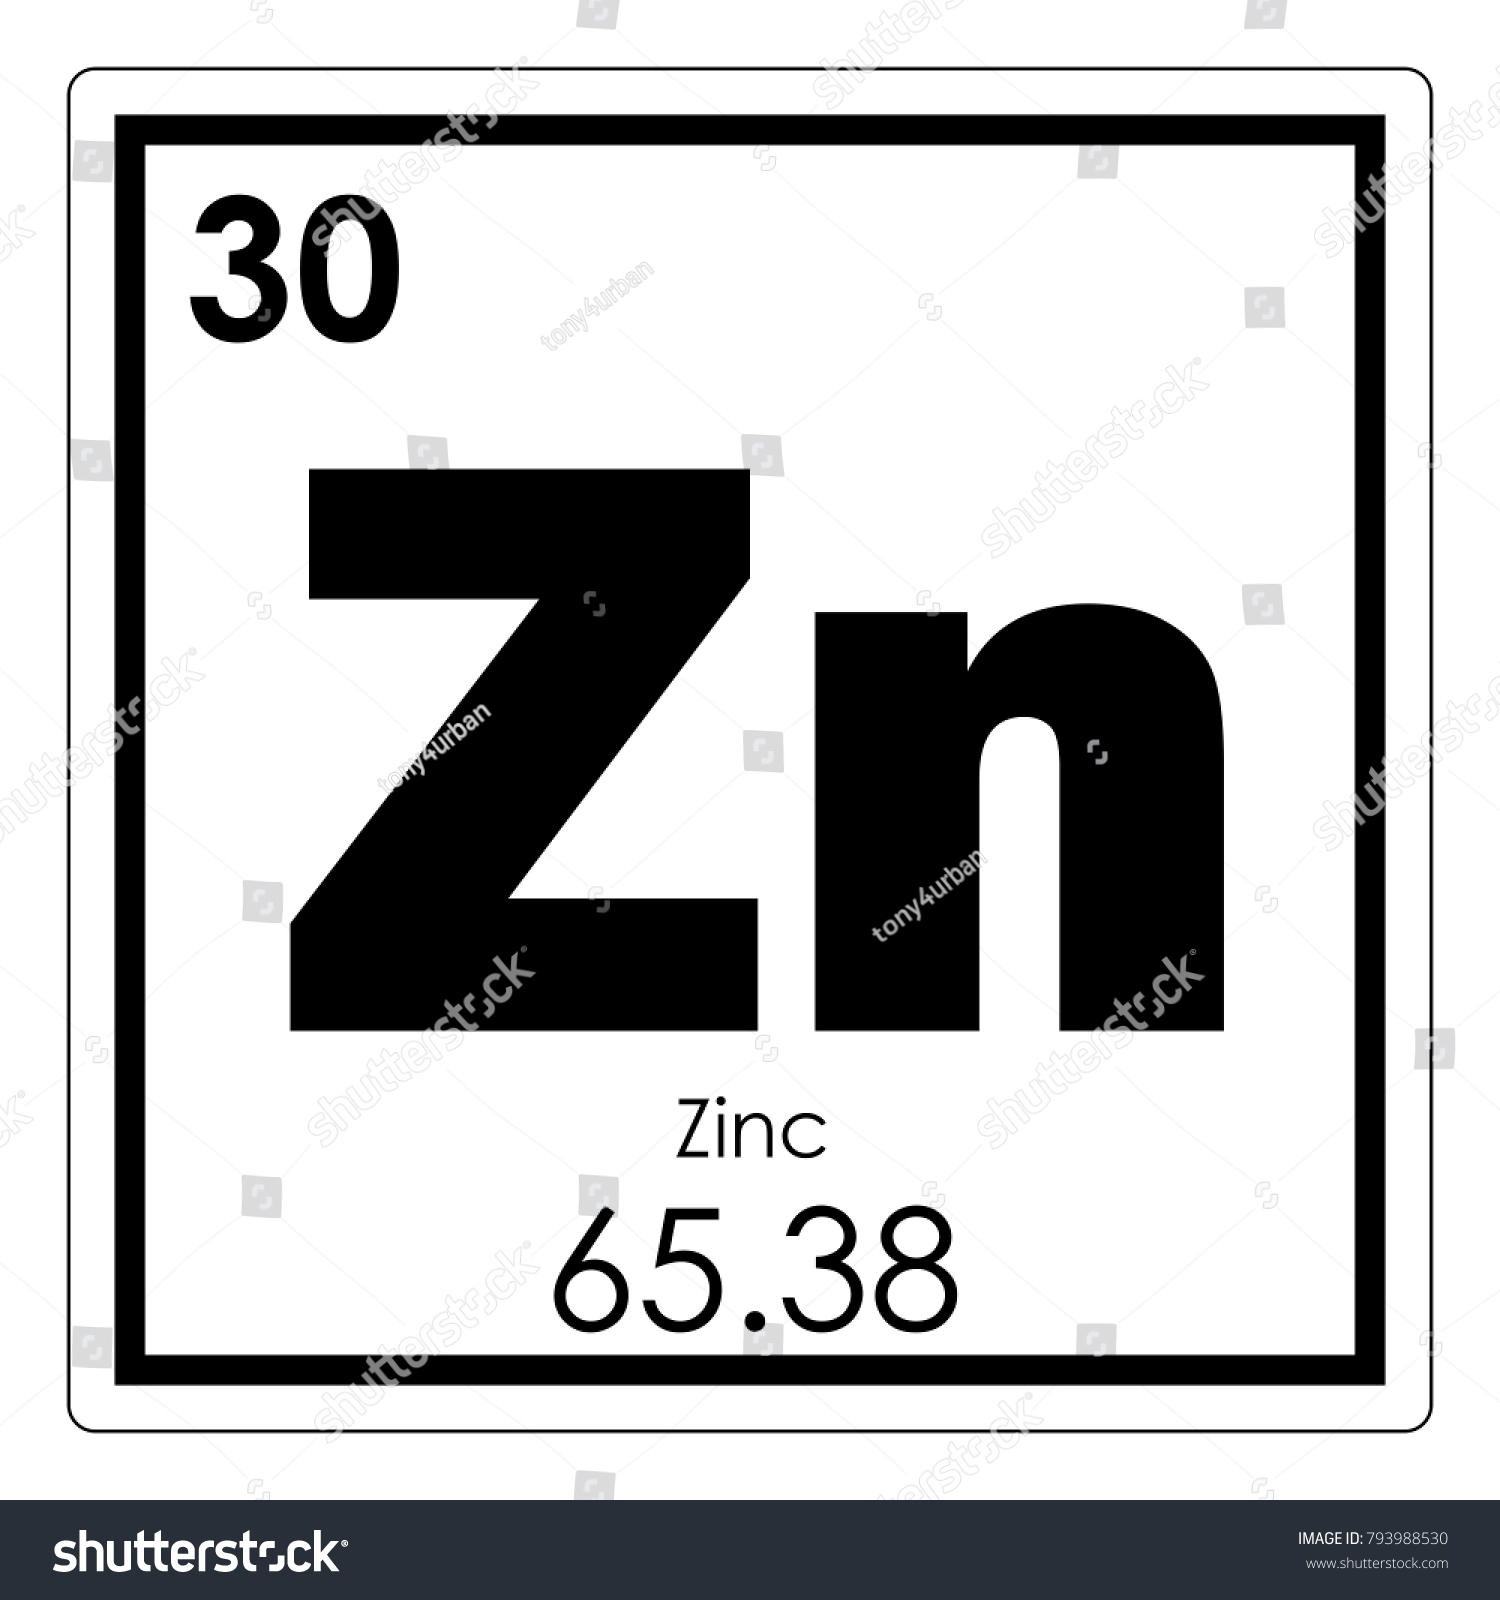 Zinc Chemical Element Periodic Table Science Stock Illustration